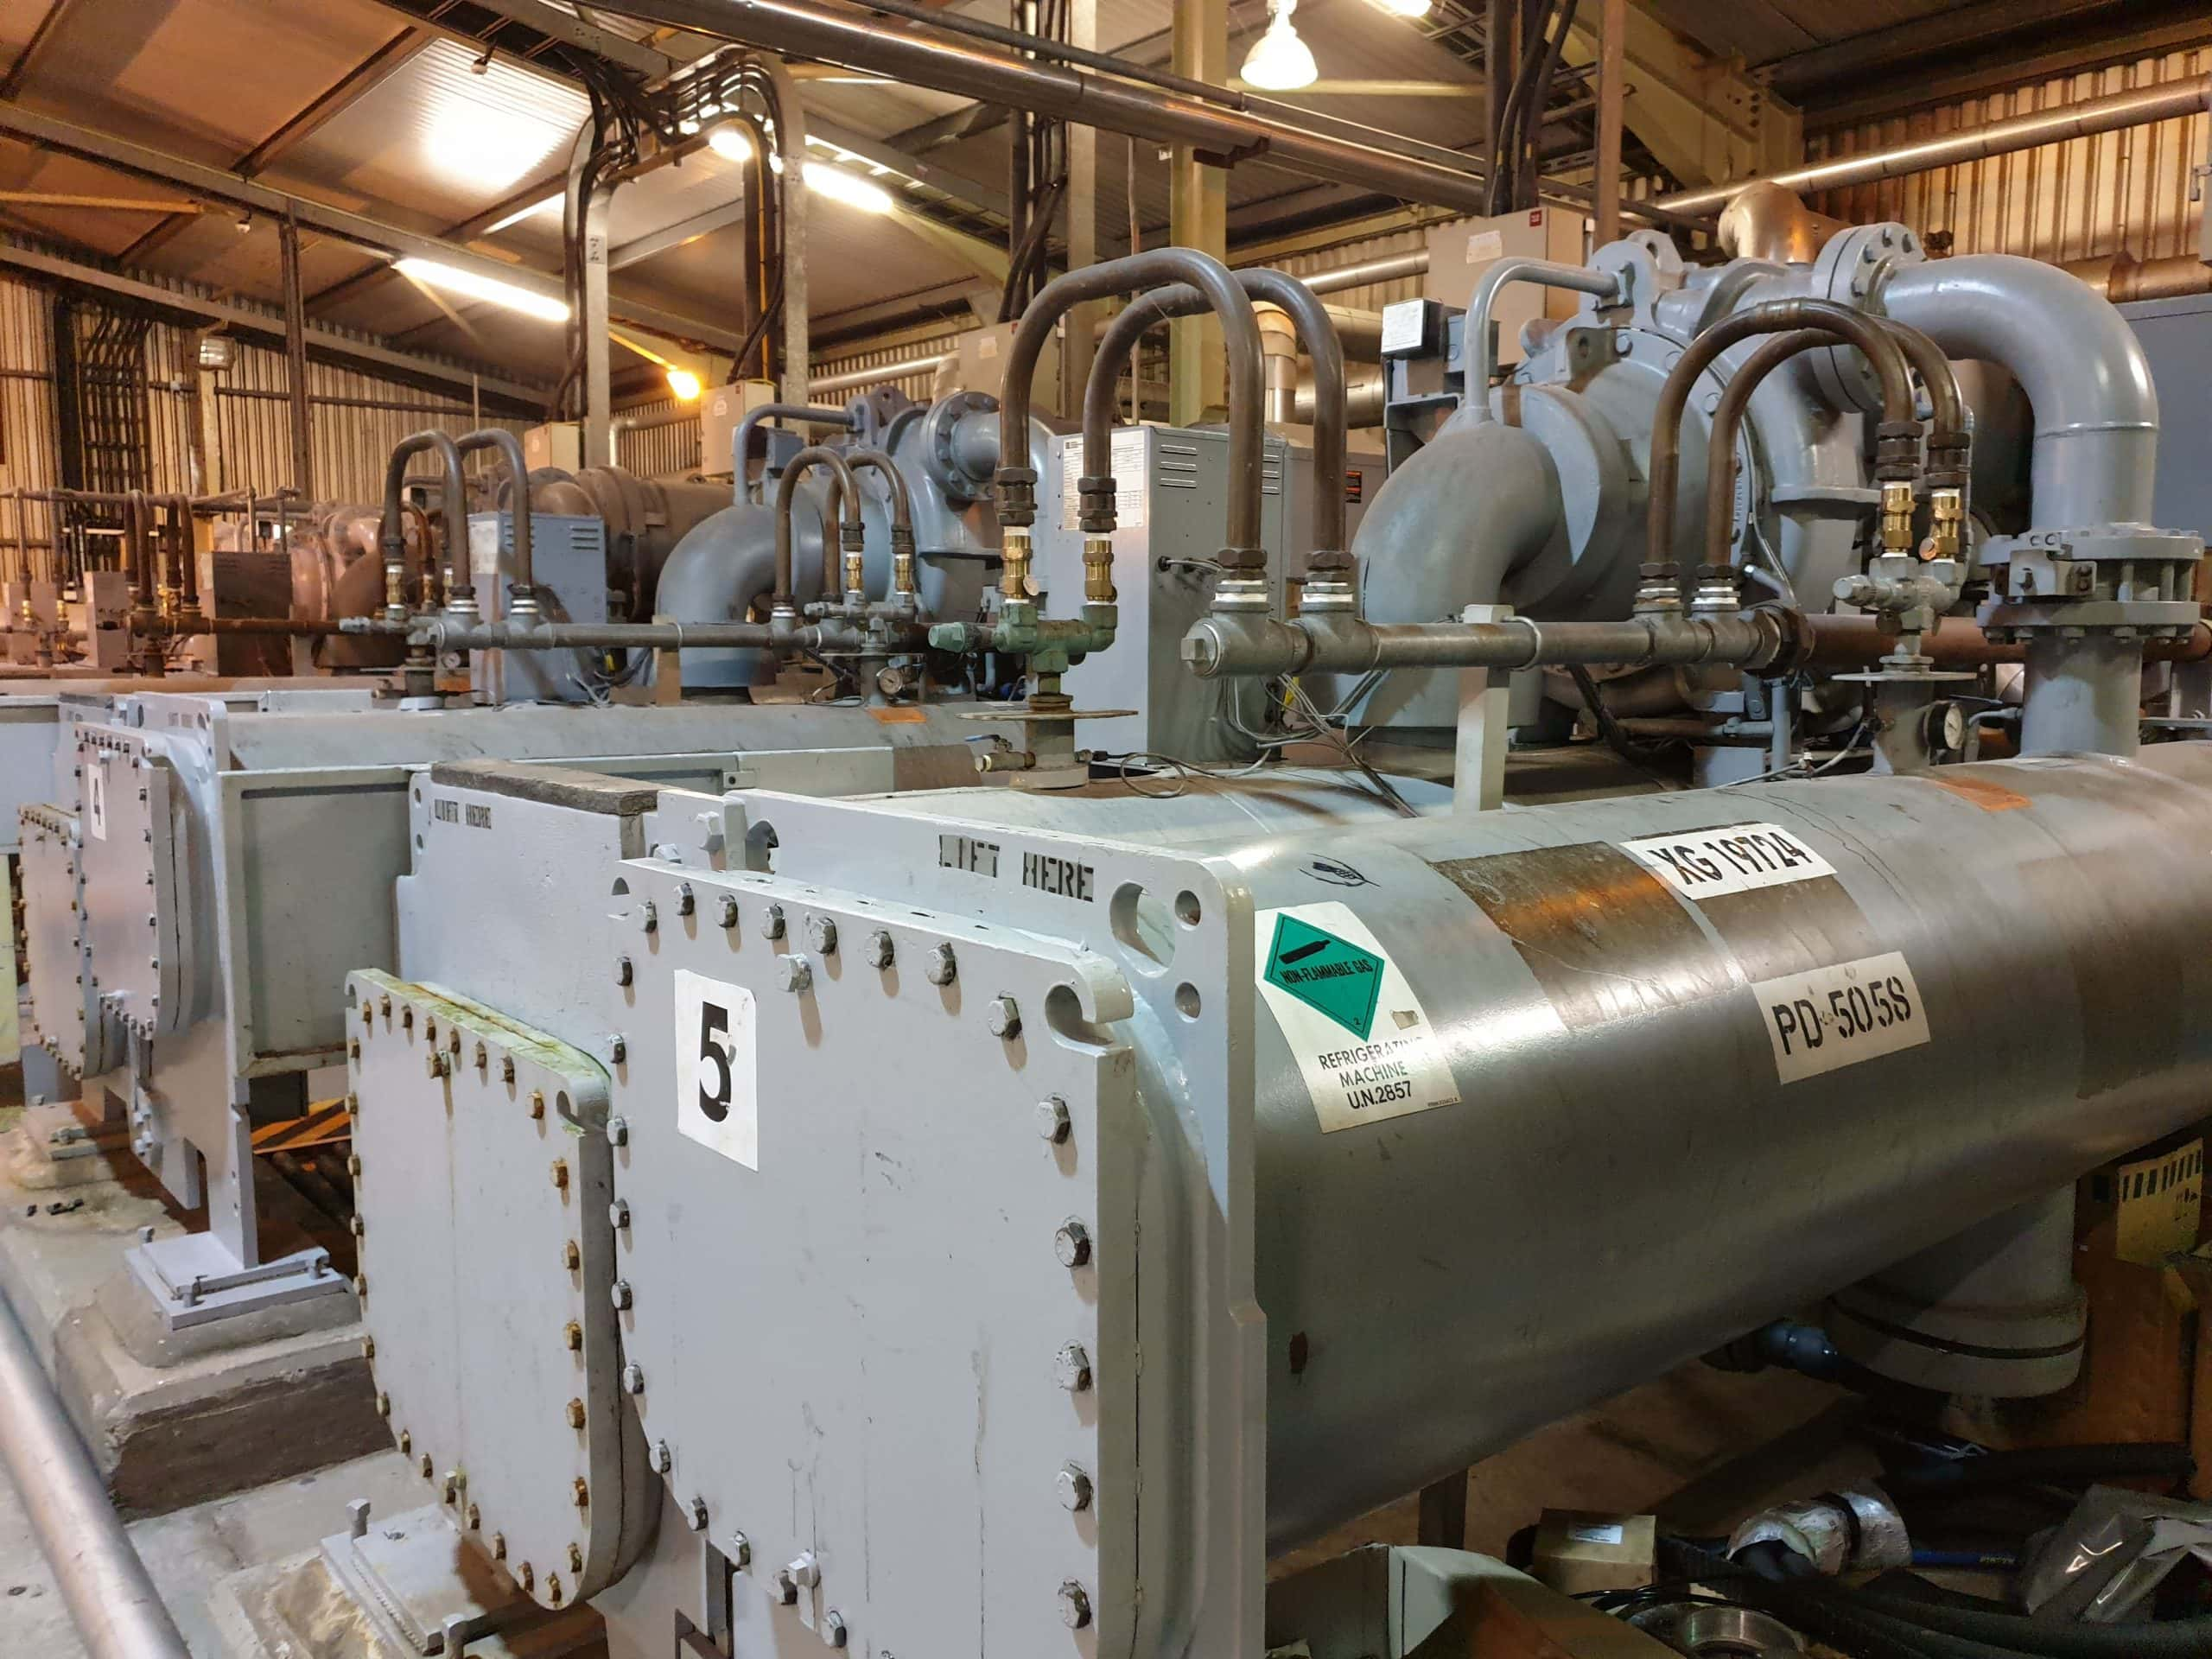 Plant room with row of 5 grey centrifugal chillers for service, maintenance and repair